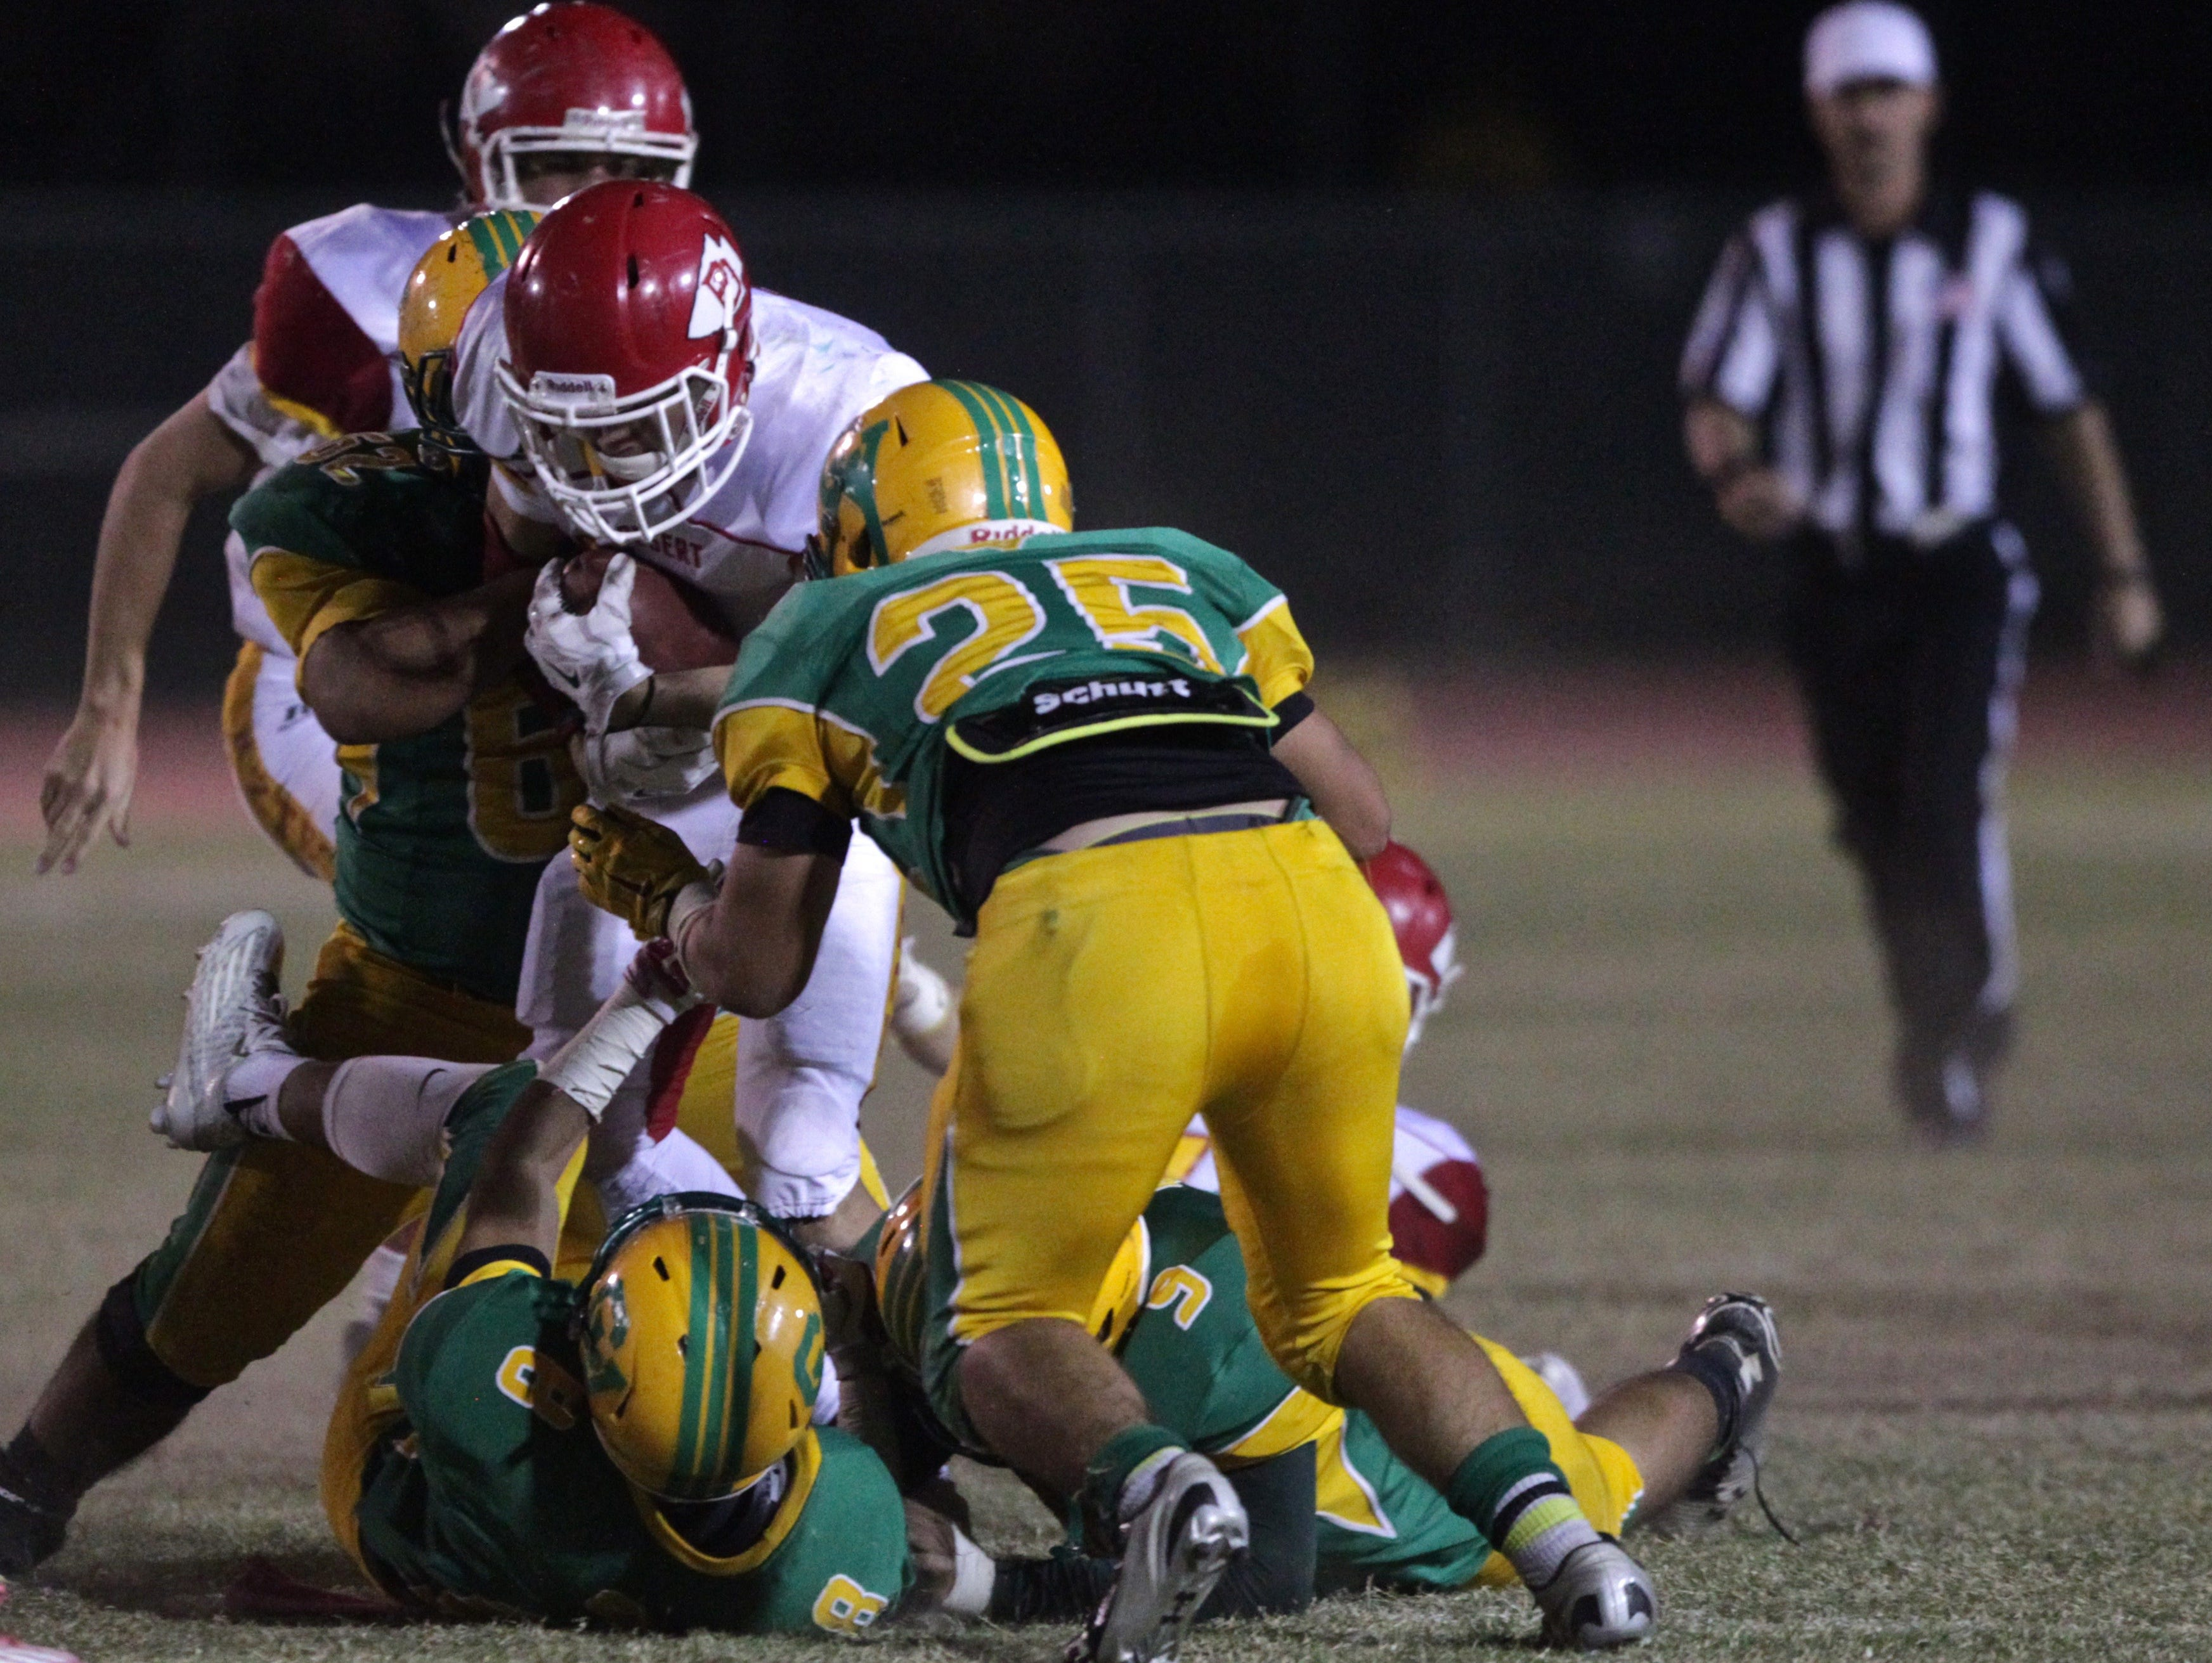 The Coachella Valley Arabs hosted the Palm Desert Aztecs for a football match on Friday.